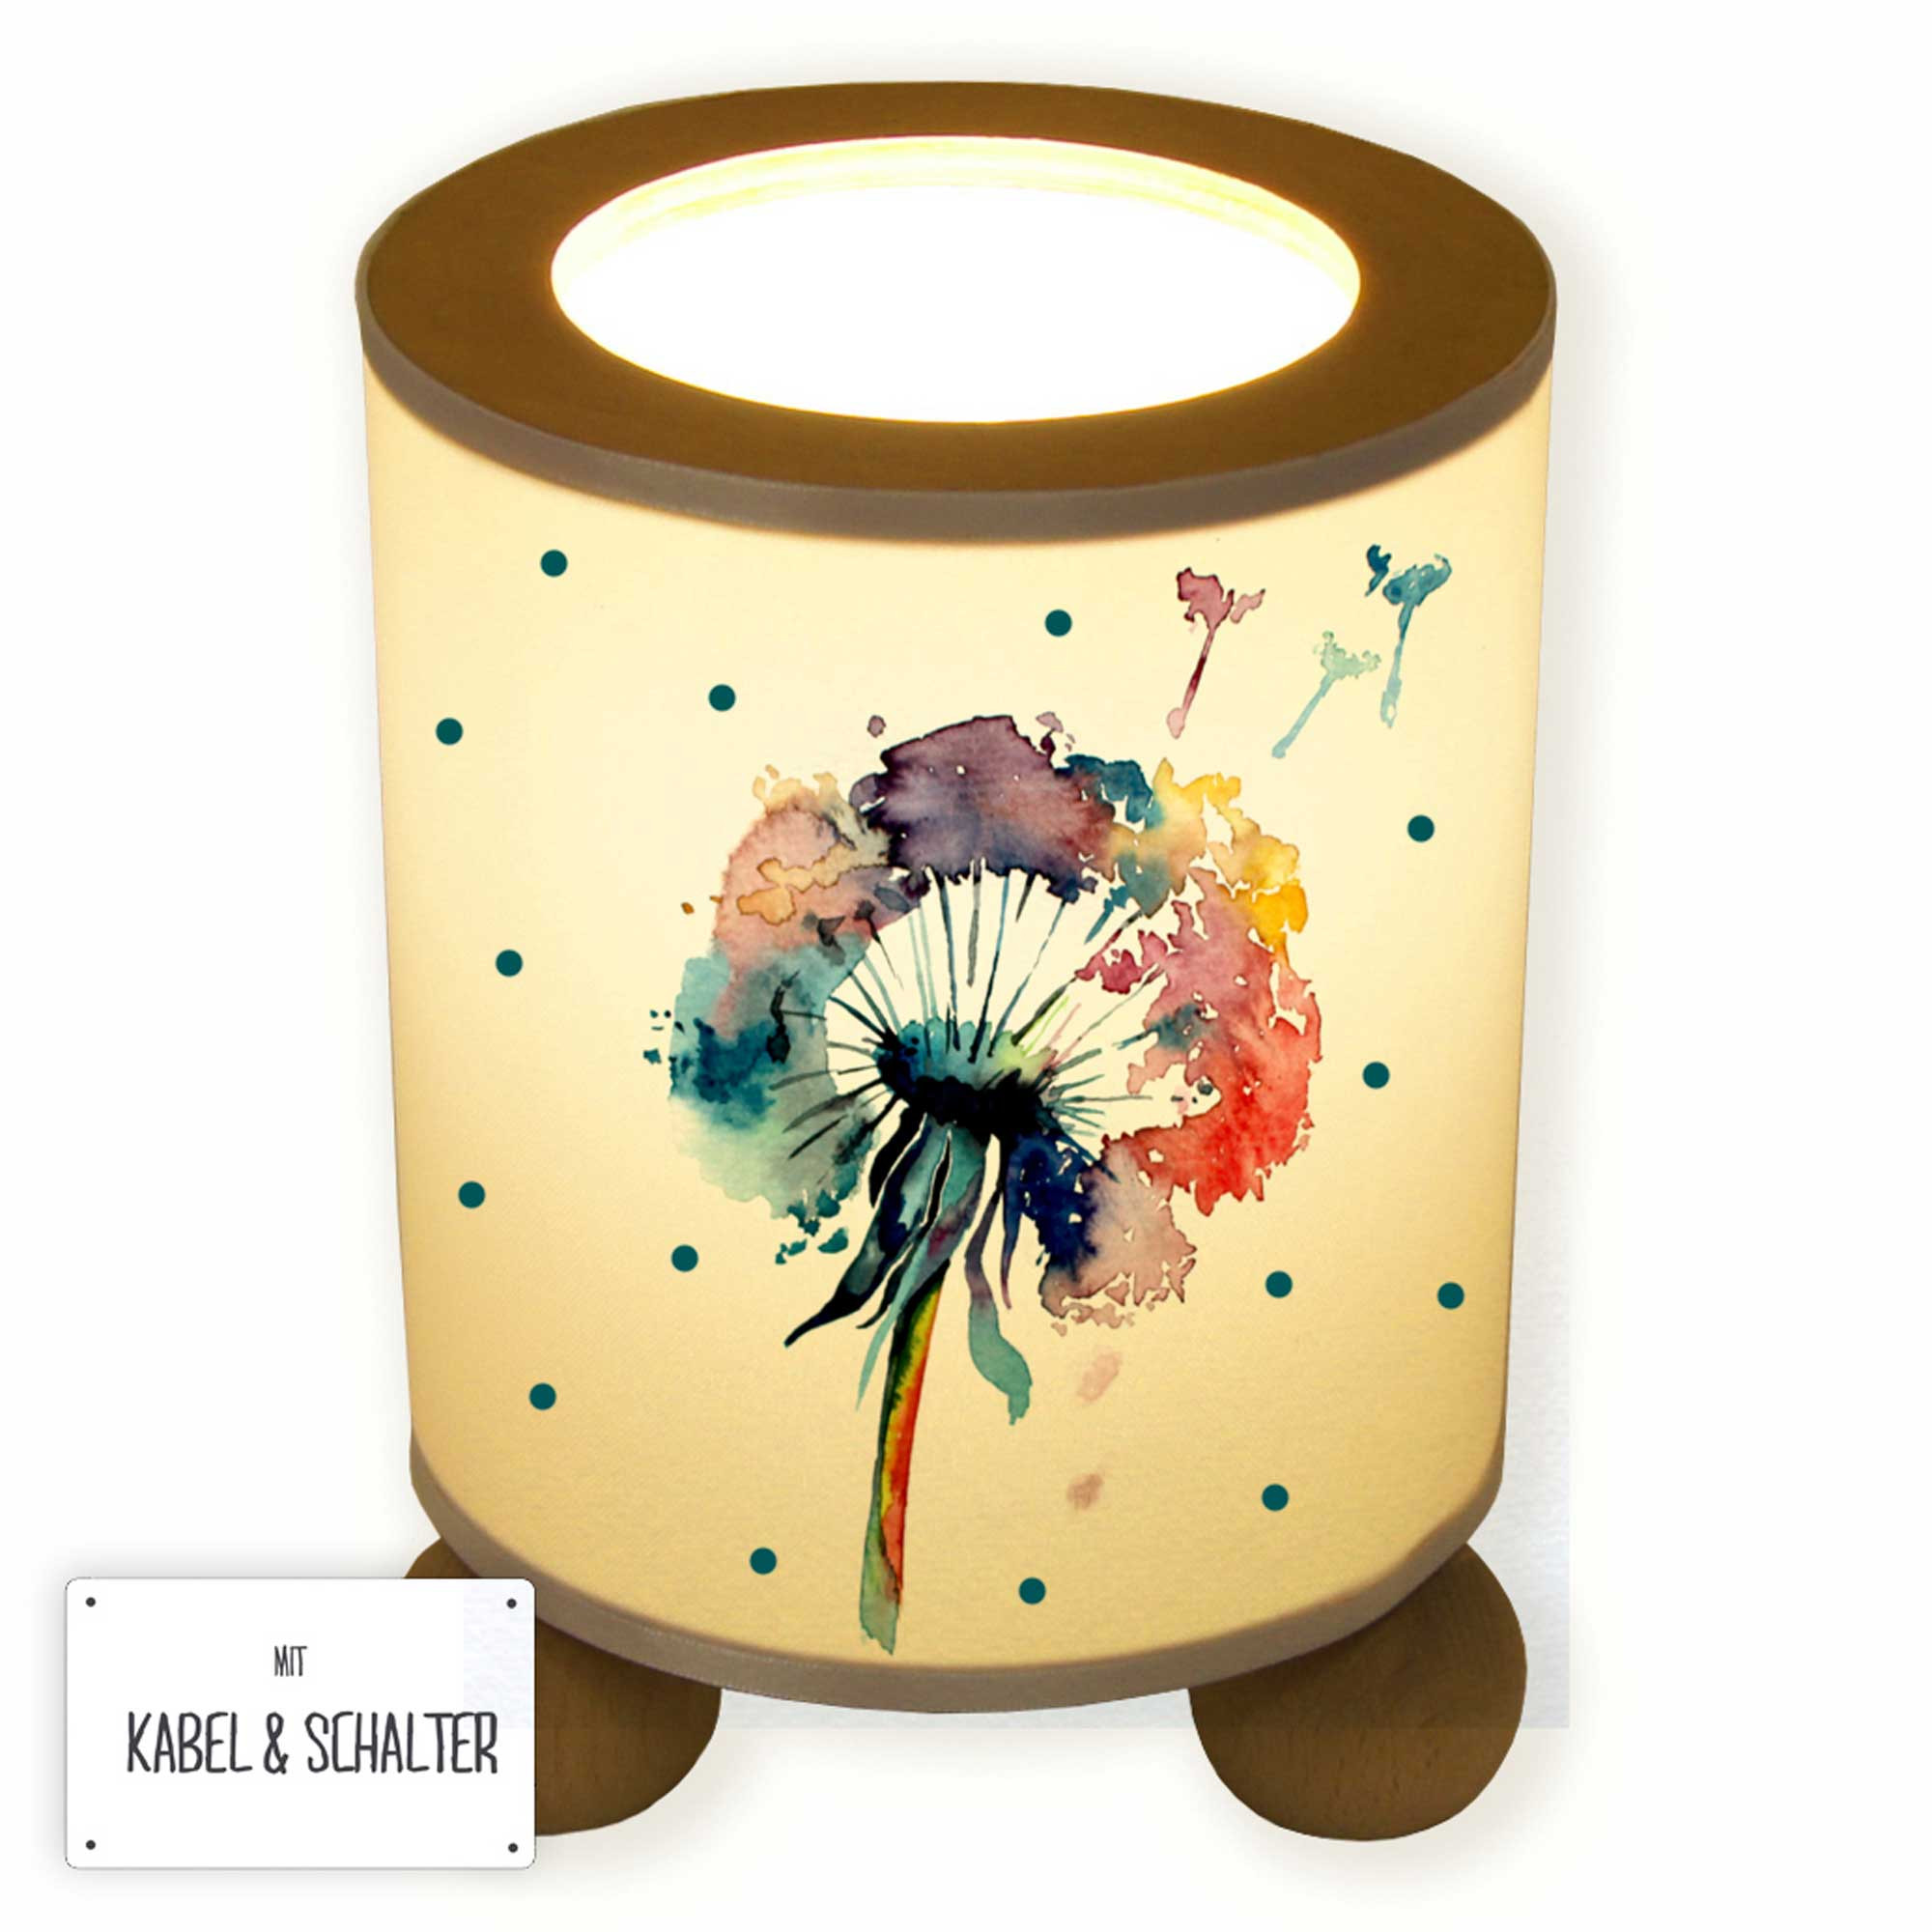 Table Lamp Dandelion Flower Watercolor With Dots Tl054 Wall Decals Bumper Sticker Murals Bags Cups Backpacks And Many More At Www Deinewandkunst Com